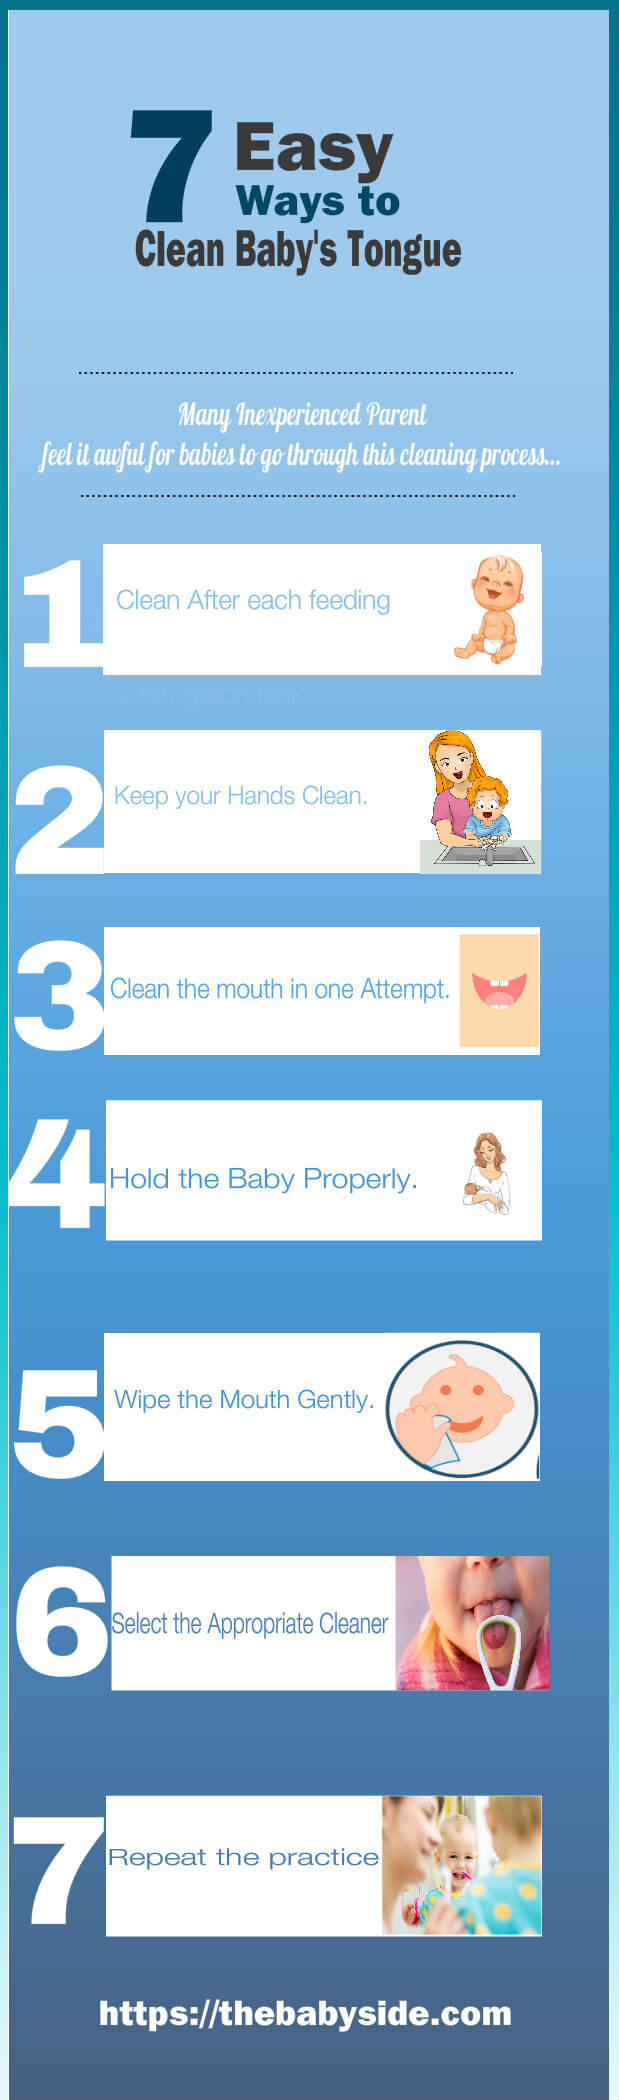 how to clean baby tongue